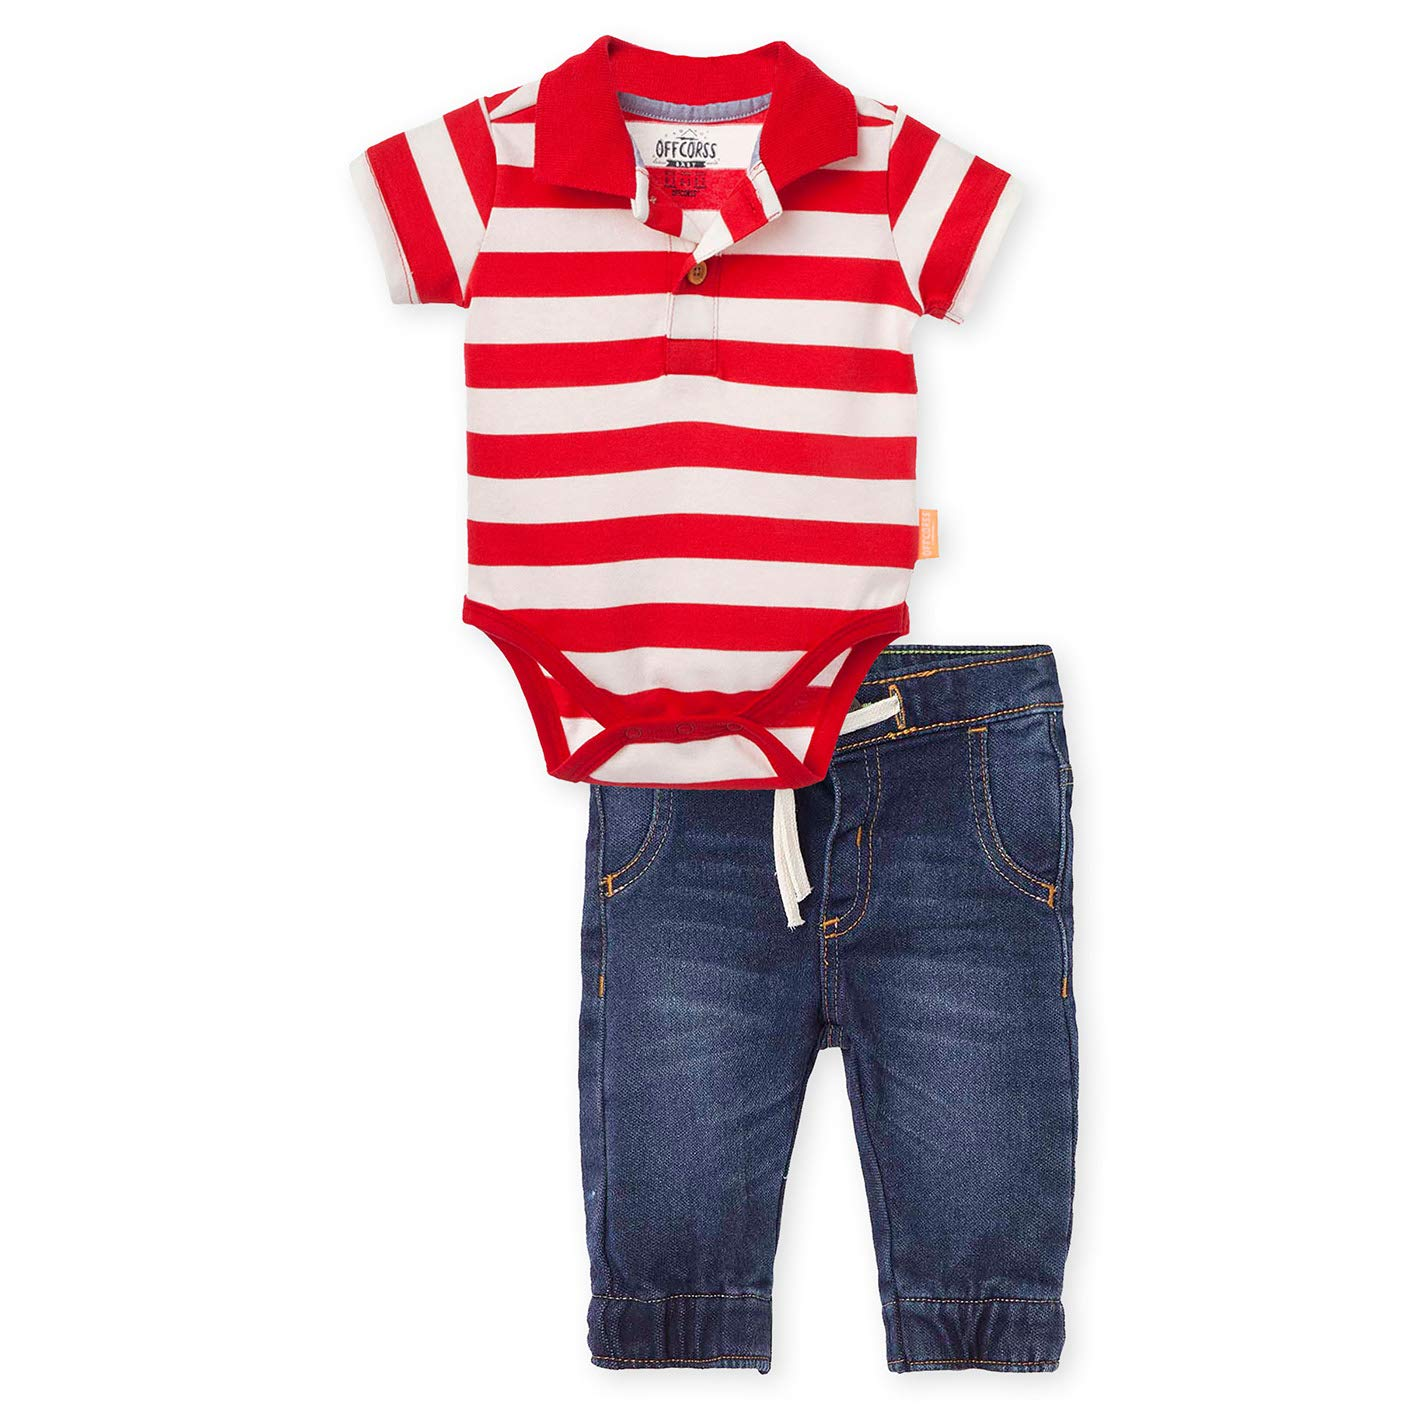 Amazon.com: OFFCORSS Baby Boy Bodysuite Pique Striped Polo Shirt ...